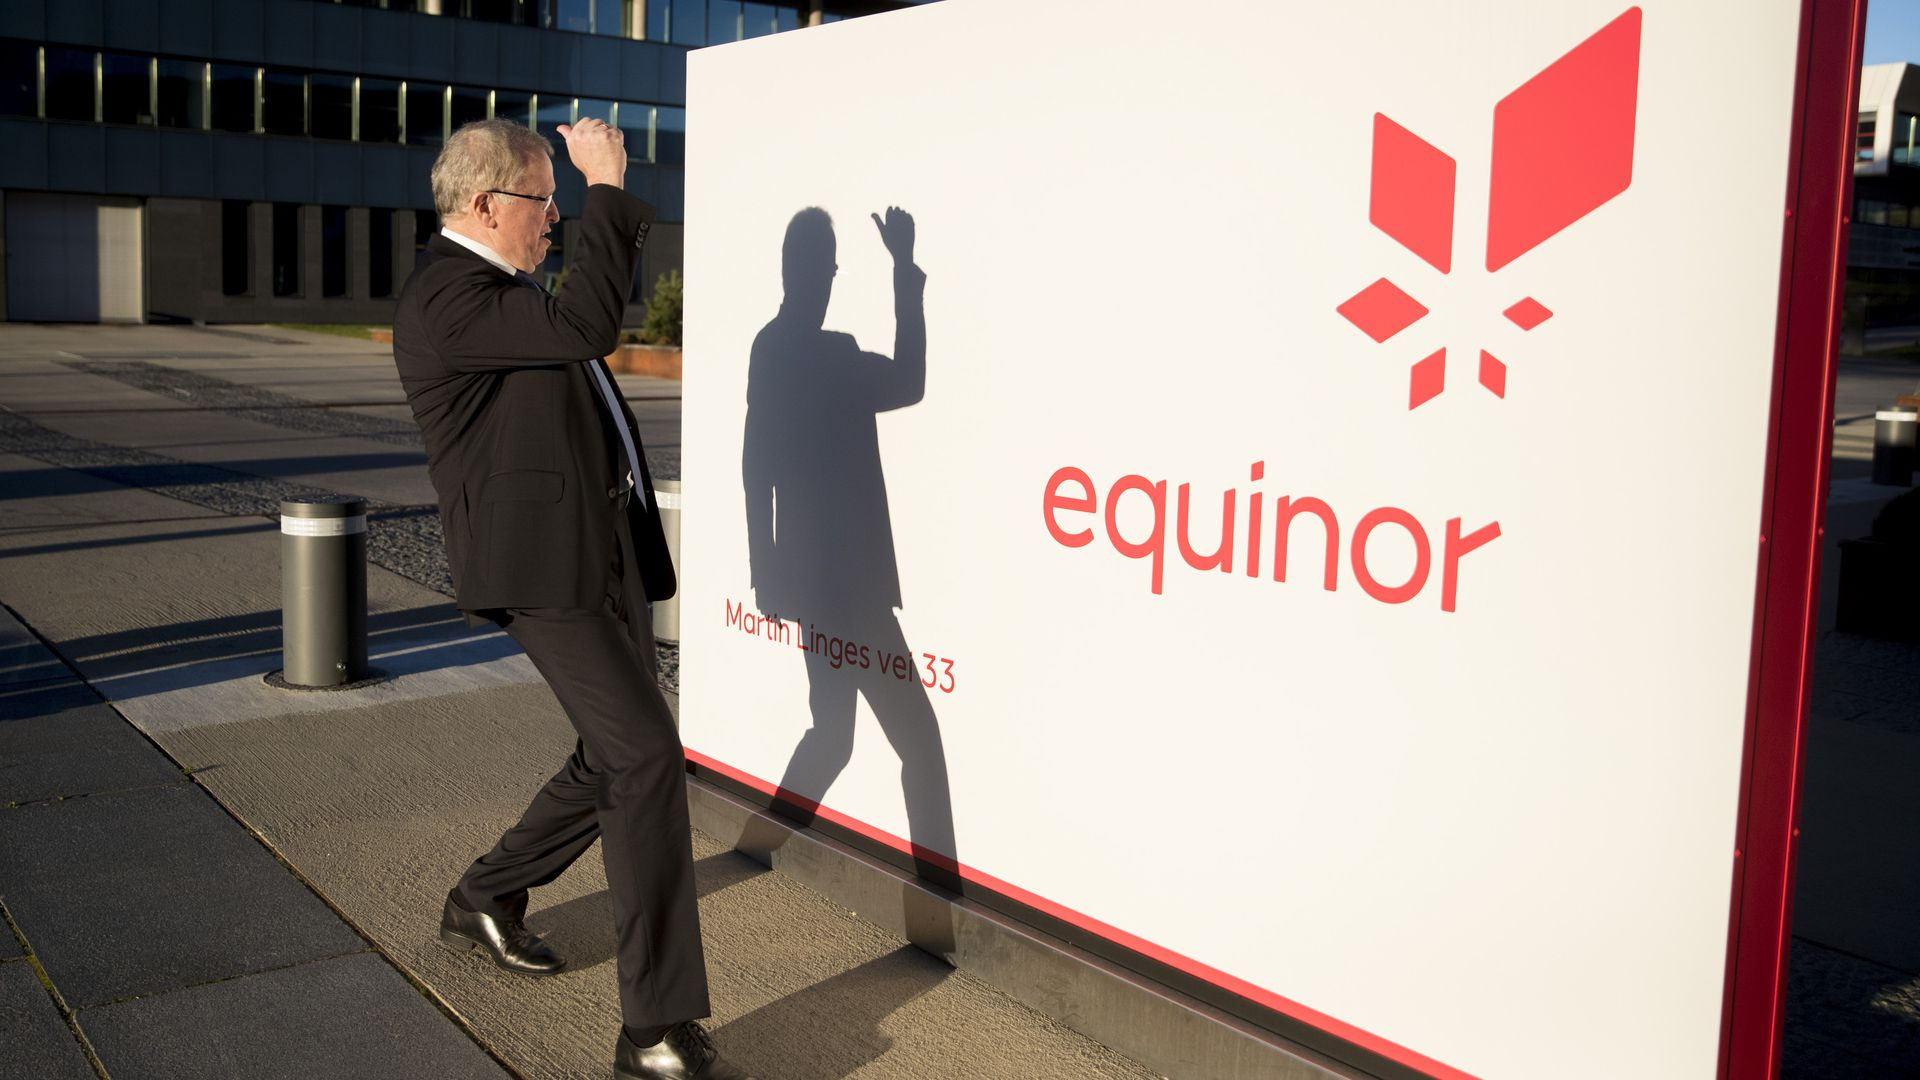 In this image, a suited man shields his face from the sun and looks at his own shadow reflected on a billboard with the Equinor logo on it.